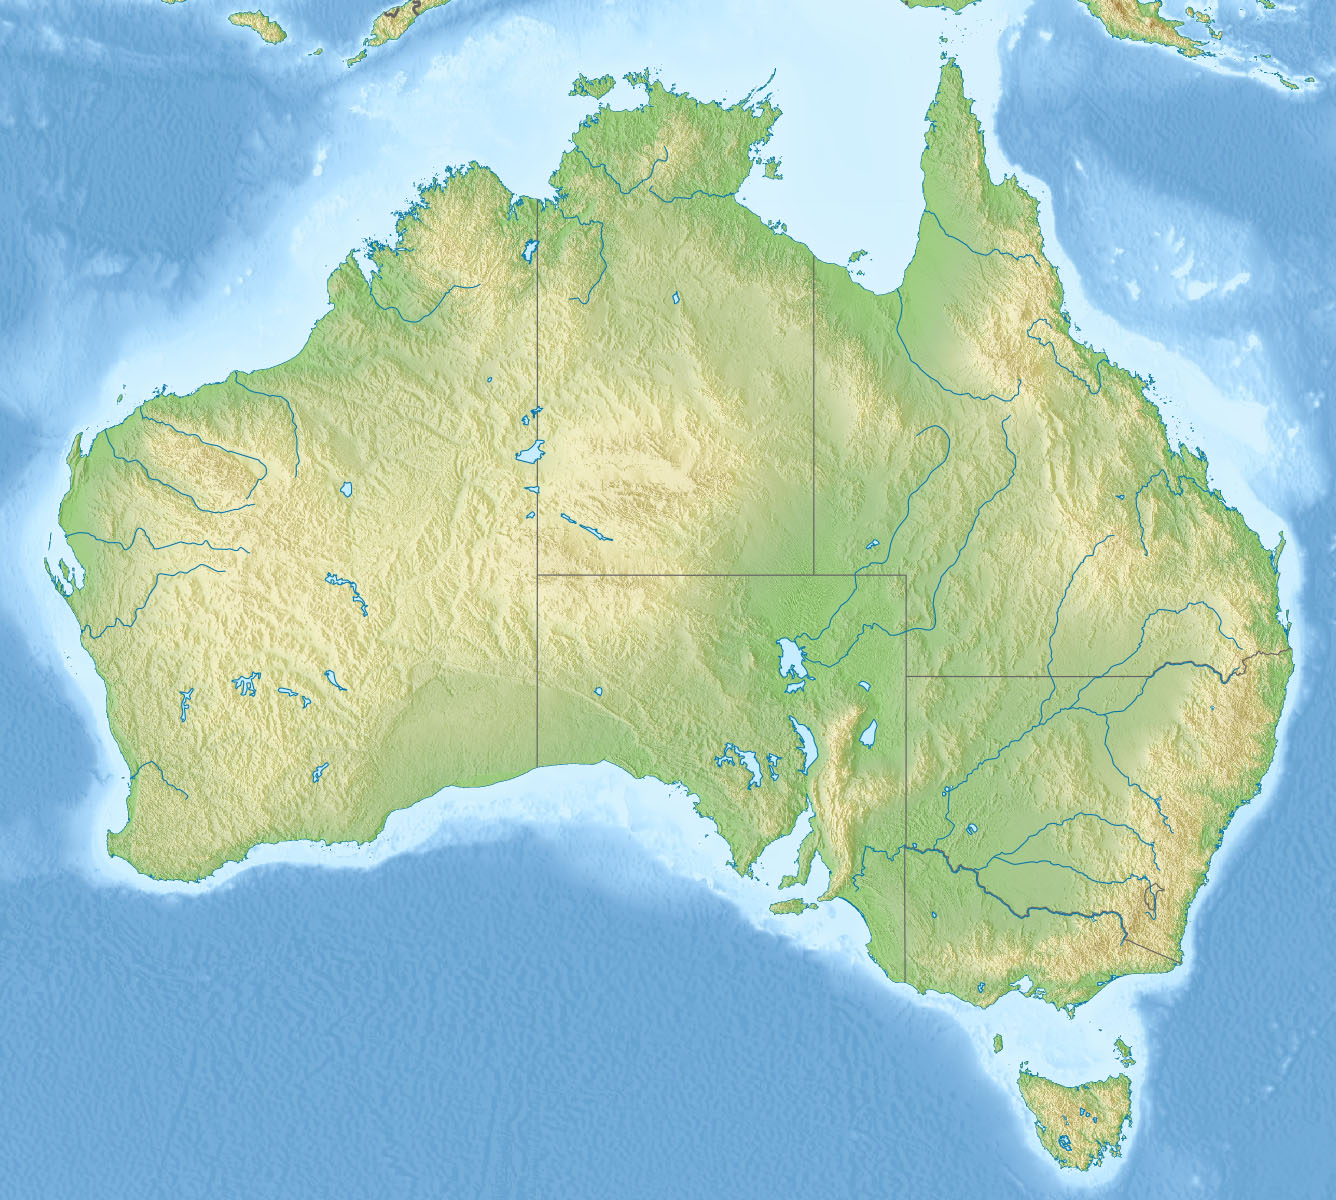 File:Australia relief map.jpg - Wikipedia